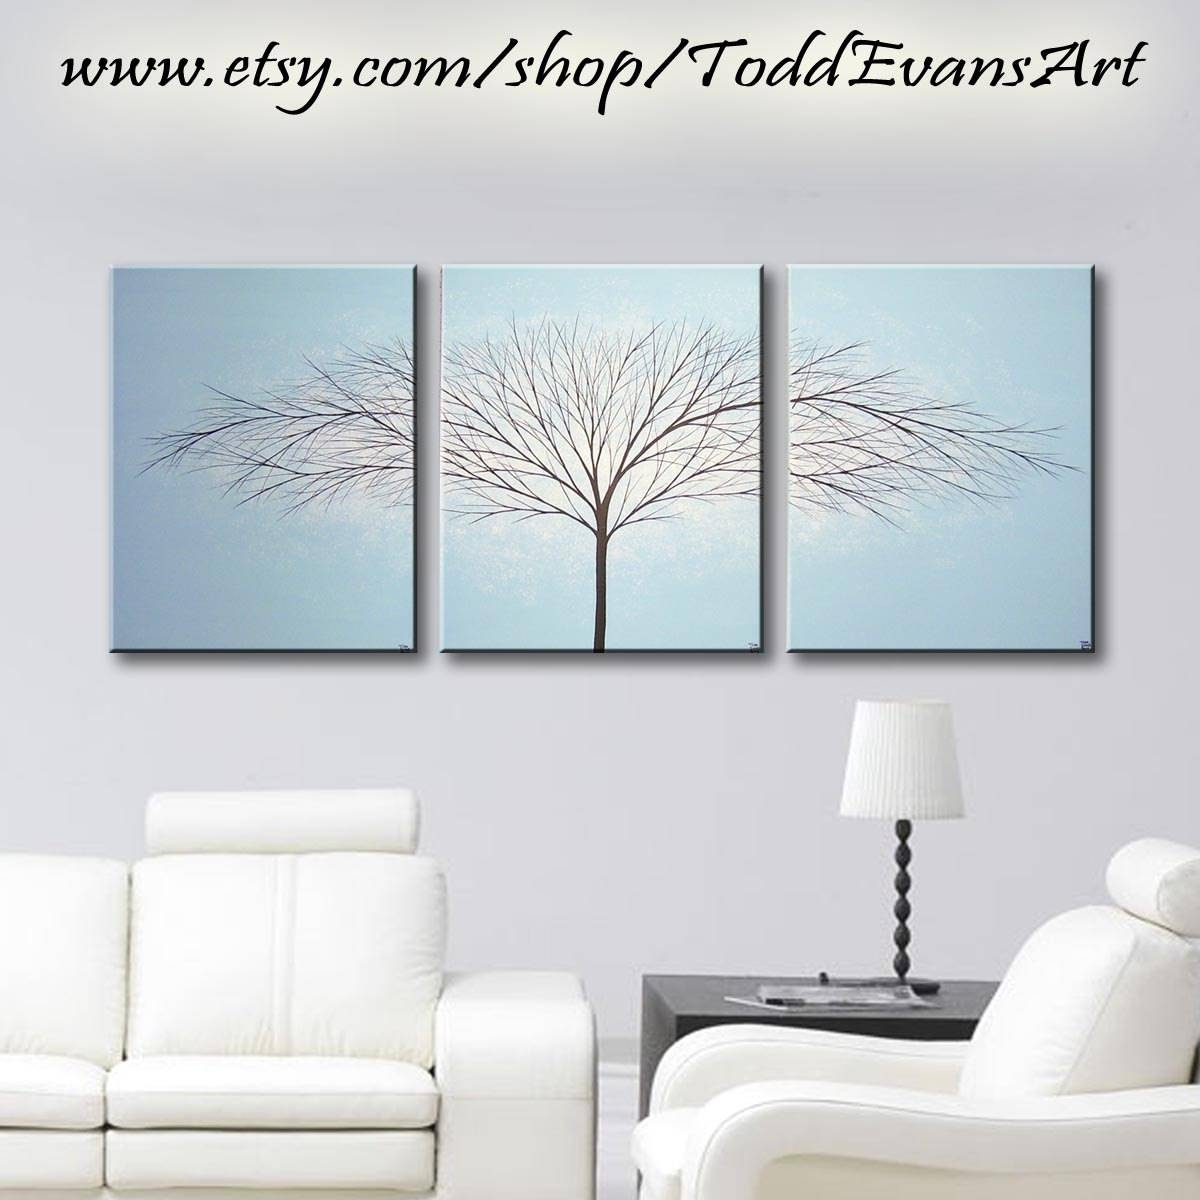 Tree Painting 3 Piece Wall Art Large Canvas Art Painting Throughout Most Recently Released 3 Piece Wall Art Sets (Gallery 15 of 25)